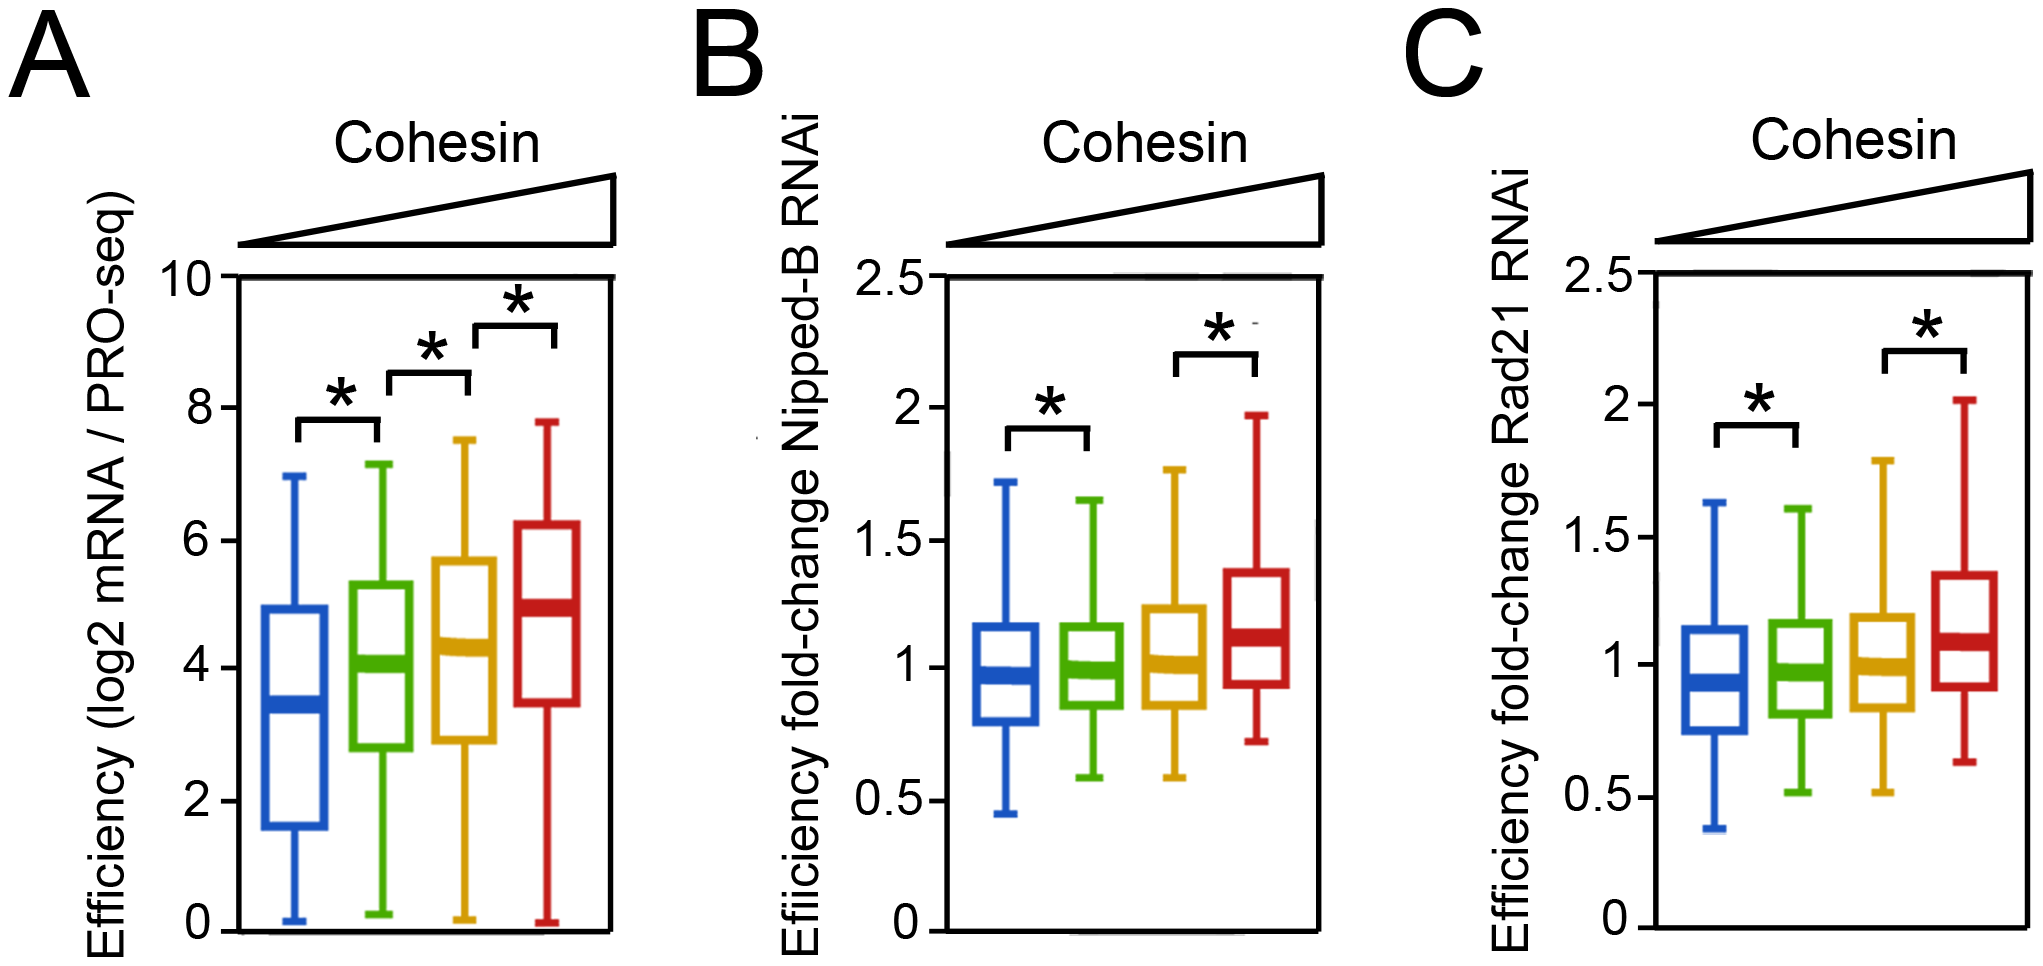 Cohesin-binding genes produce more steady state mRNA per elongating Pol II complex in BG3 cells.